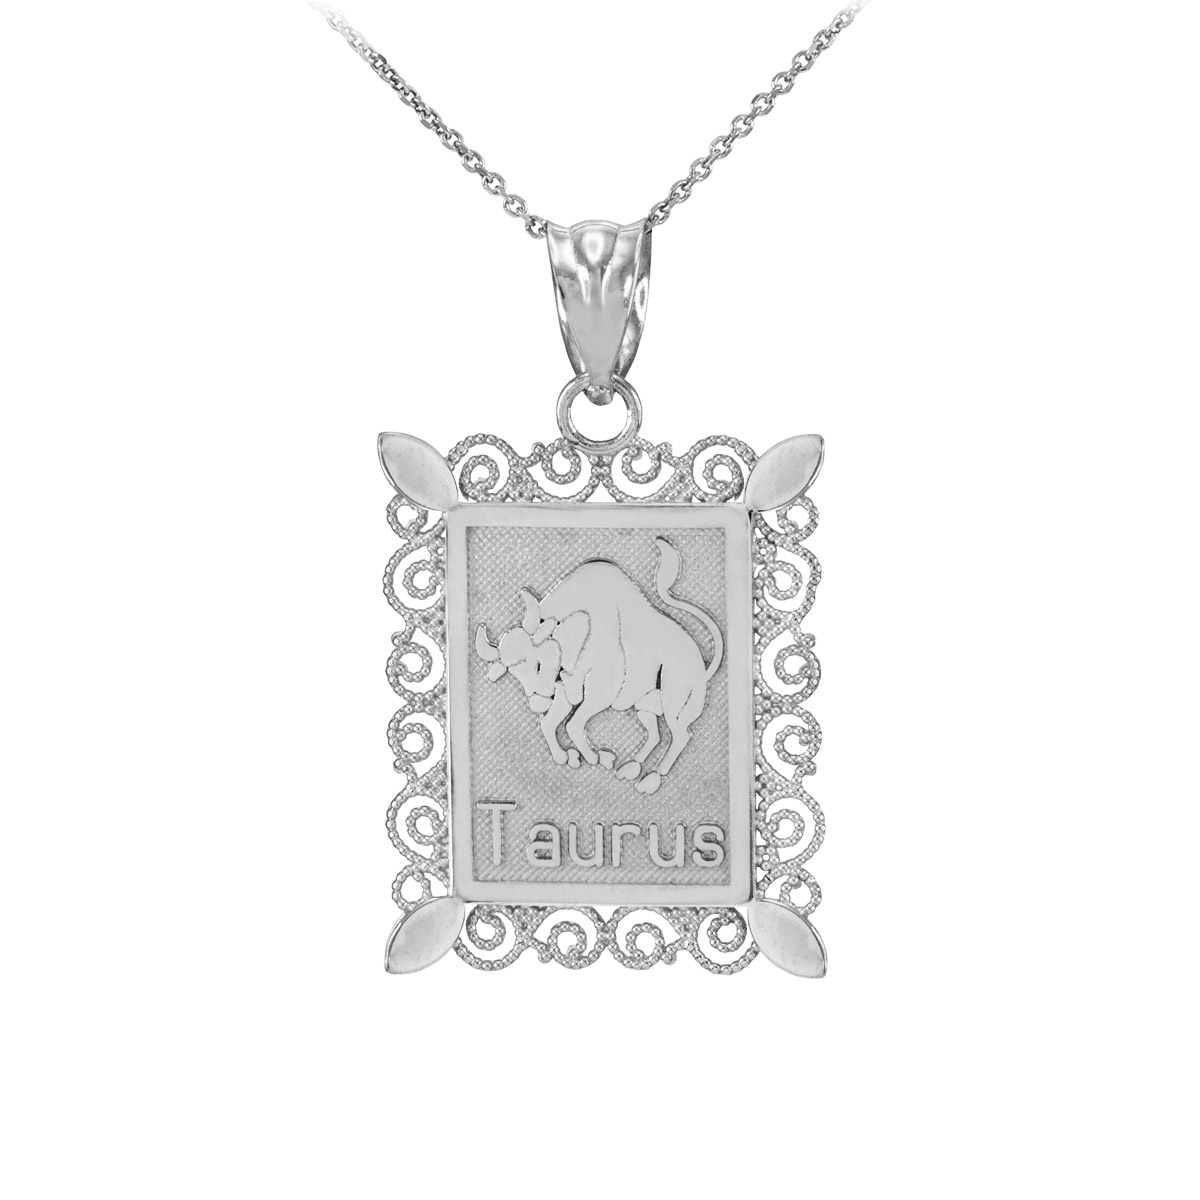 Taurus Star Sign Zodiac Jewellery